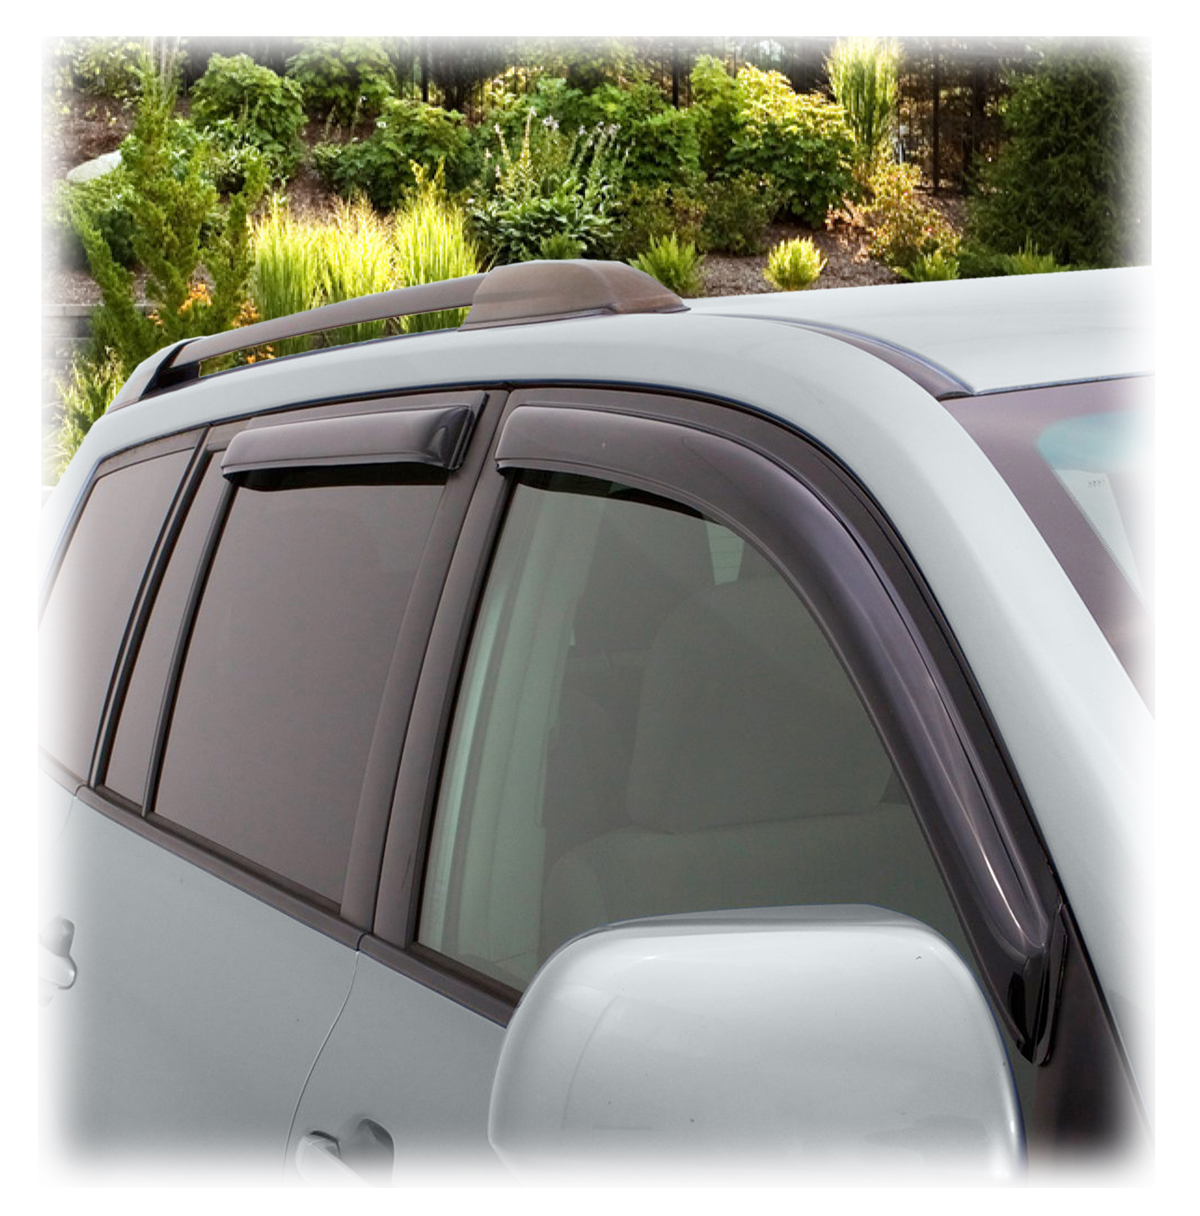 2016 Toyota Highlander For Sale >> Tape-On Outside-Mount Window Visors, Rain Guards, Shades, Wind/Weather/Air/Snow/Vent Deflectors ...